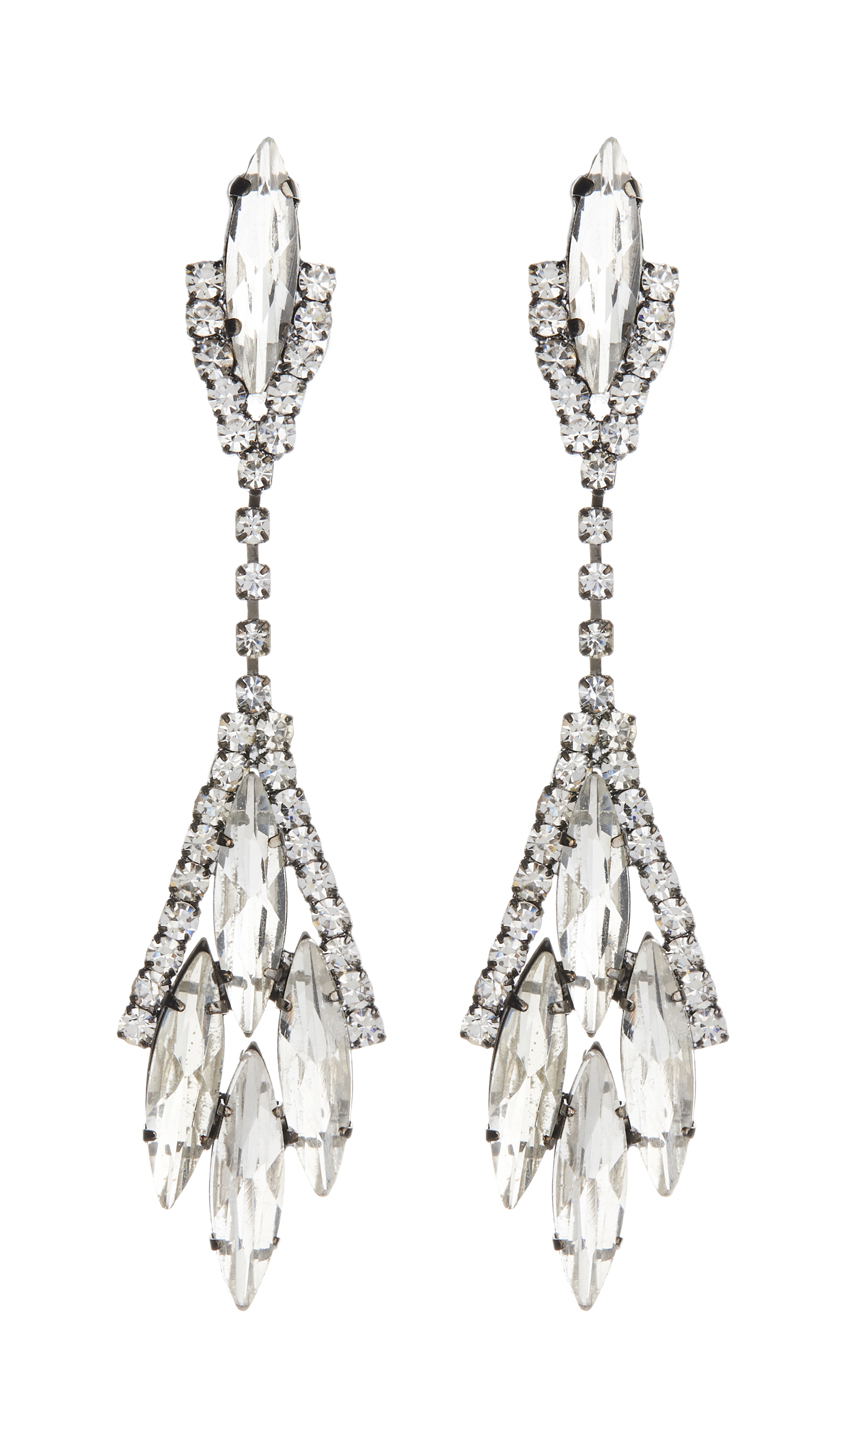 Clip On Earrings - Briana - gunmetal grey drop earring with clear stones and crystals